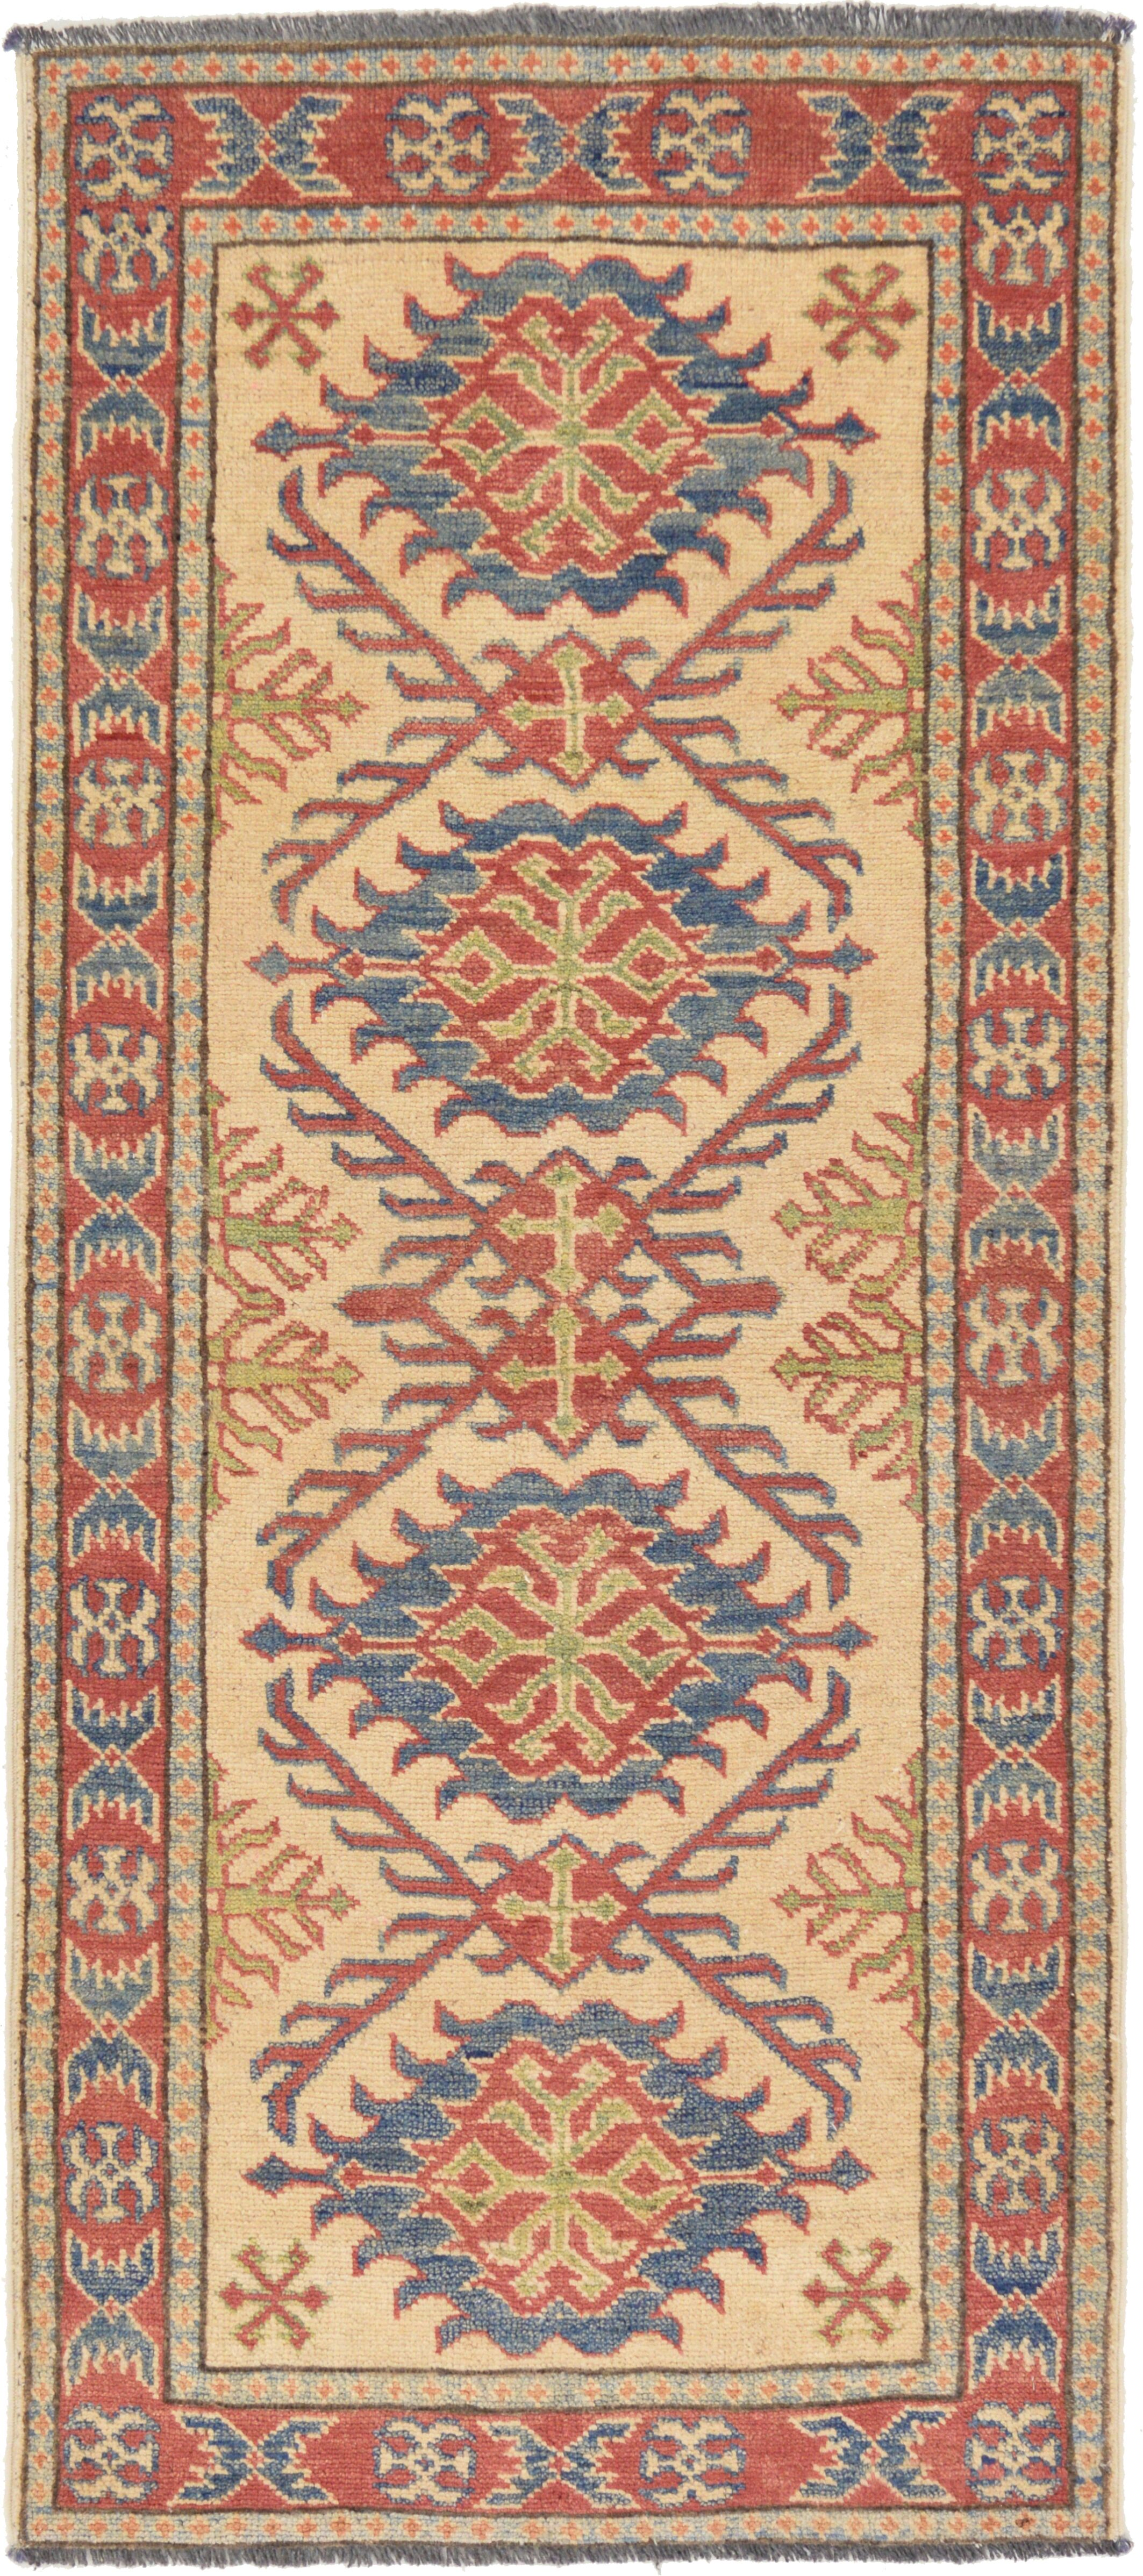 One-of-a-Kind Alayna Hand-Knotted Wool Orange/Beige/Blue Area Rug